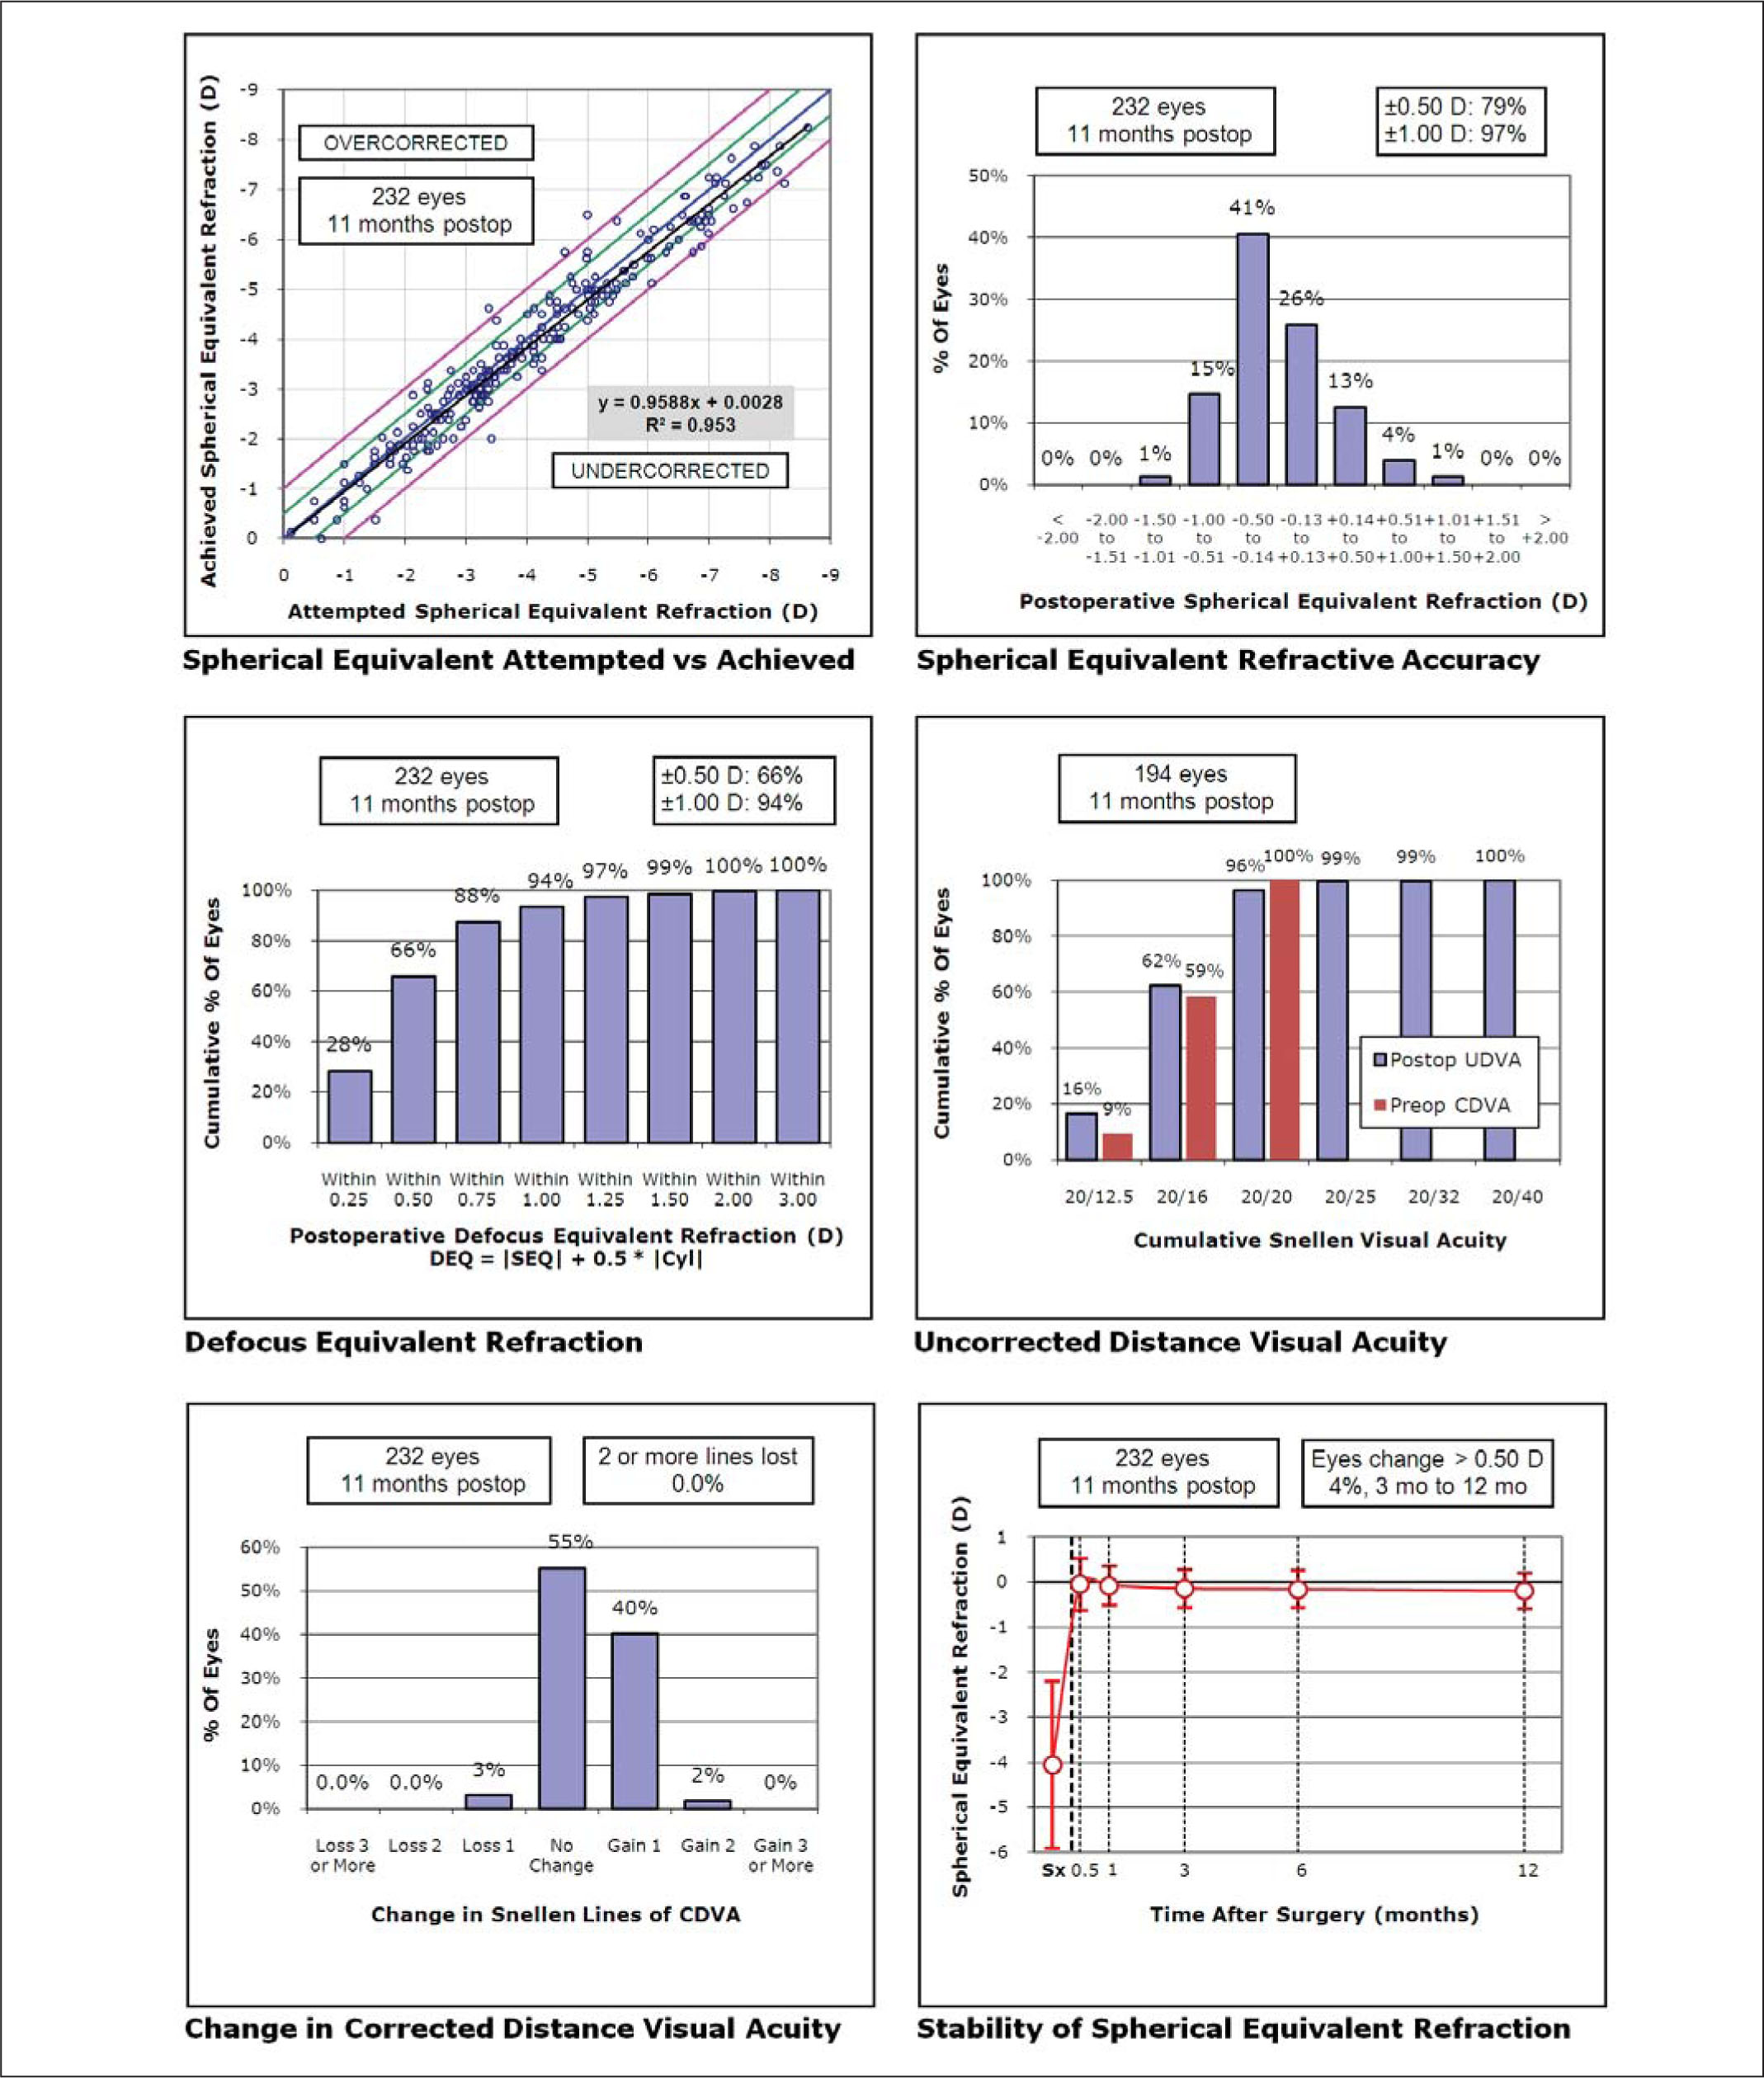 "Standard Graphs for Reporting Refractive Surgery (2009). Linear Regression Analysis and the Coefficient of Determination (R2) Have Been Added to the Attempted vs Achieved Correction Scatterplot, and the Stability Plot Is Represented as a Continuous Timescale. UDVA = Uncorrected Distance Visual Acuity, CDVA = Corrected Visual Acuity [note. A Simple Internet Search Using Search Terms Such as ""refractive Surgery Outcomes Analysis Software"" Will Readily Provide Links to Current Commercially Available Software Packages.]"